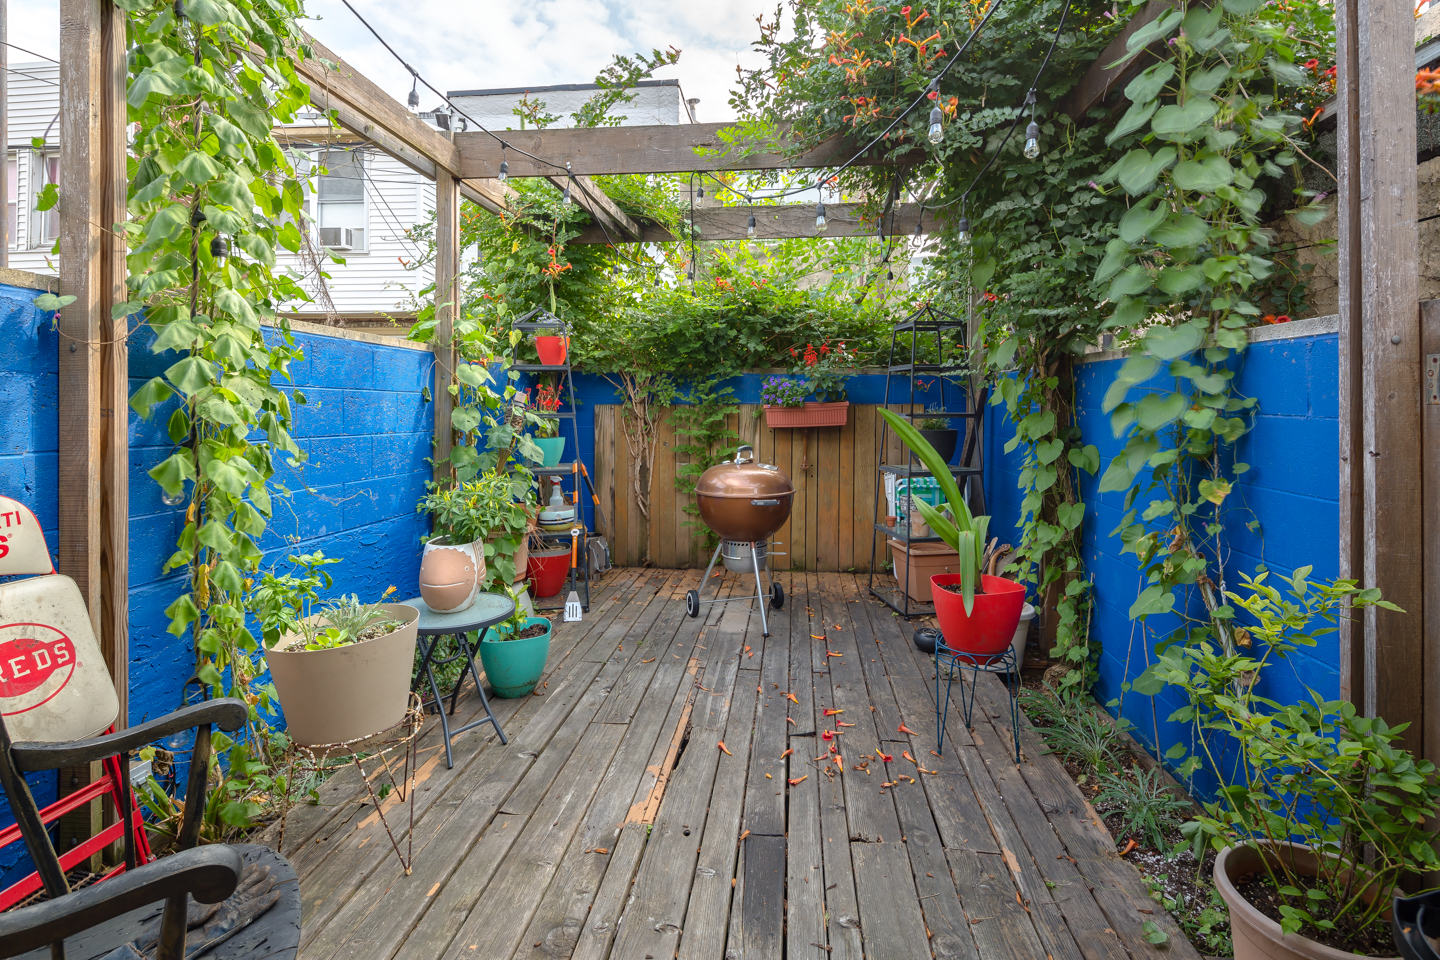 A secluded backyard patio in South Philly with blue-painted walls and a trellis.